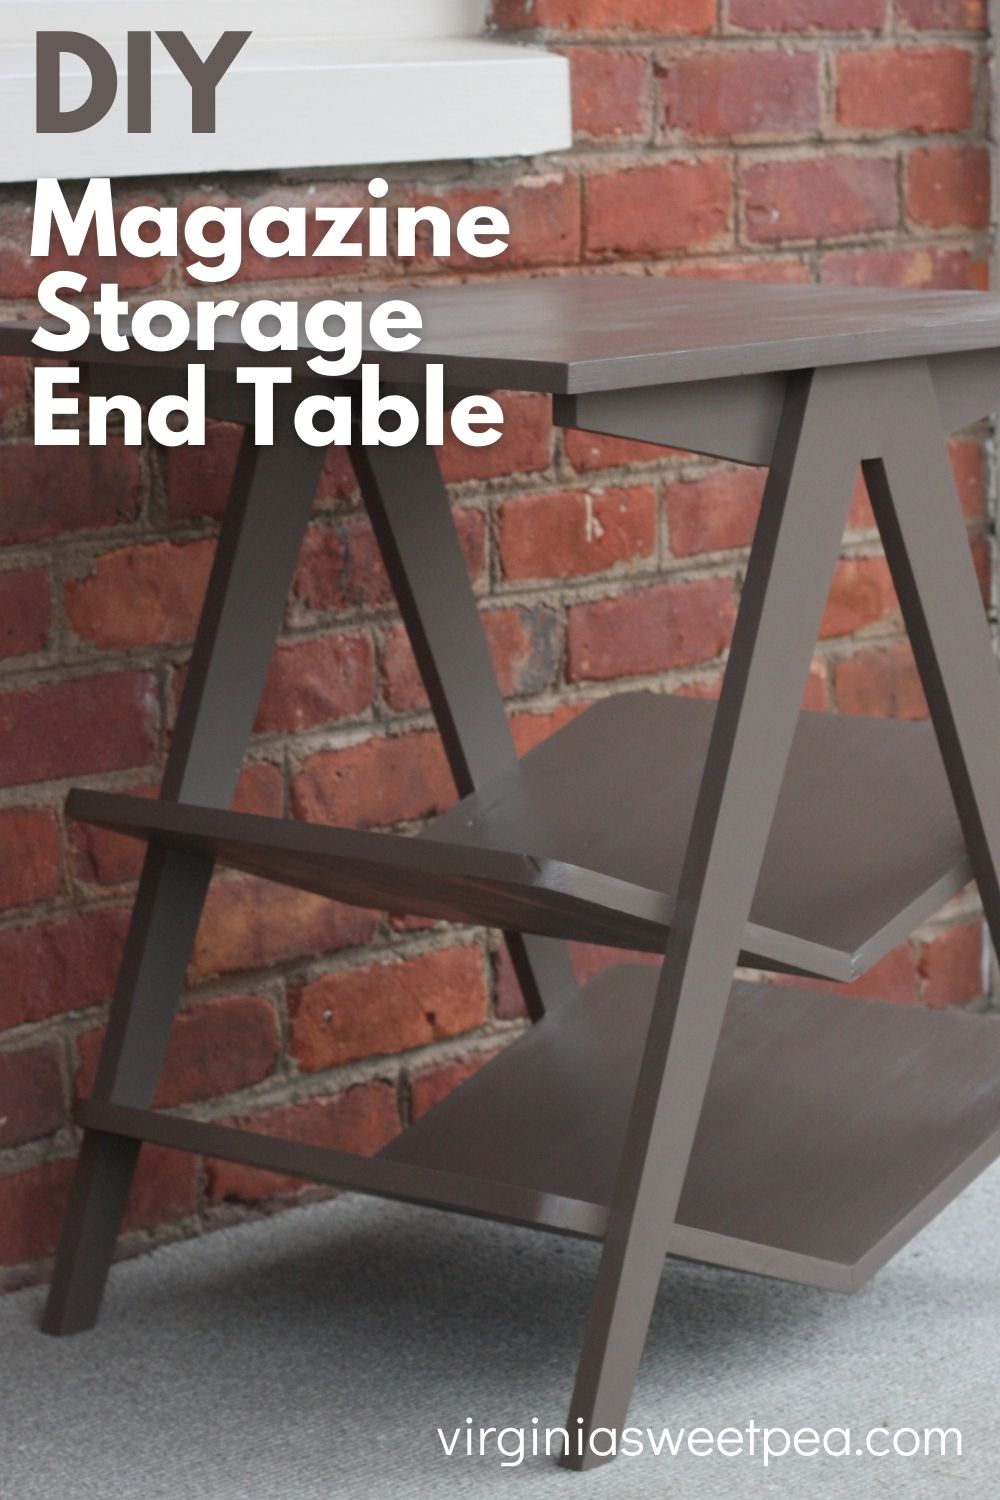 DIY Magazine Storage End Table - Learn how to make a side table with built-in shelves for magazine and book storage.  #diysidetable #diyendtable  via @spaula